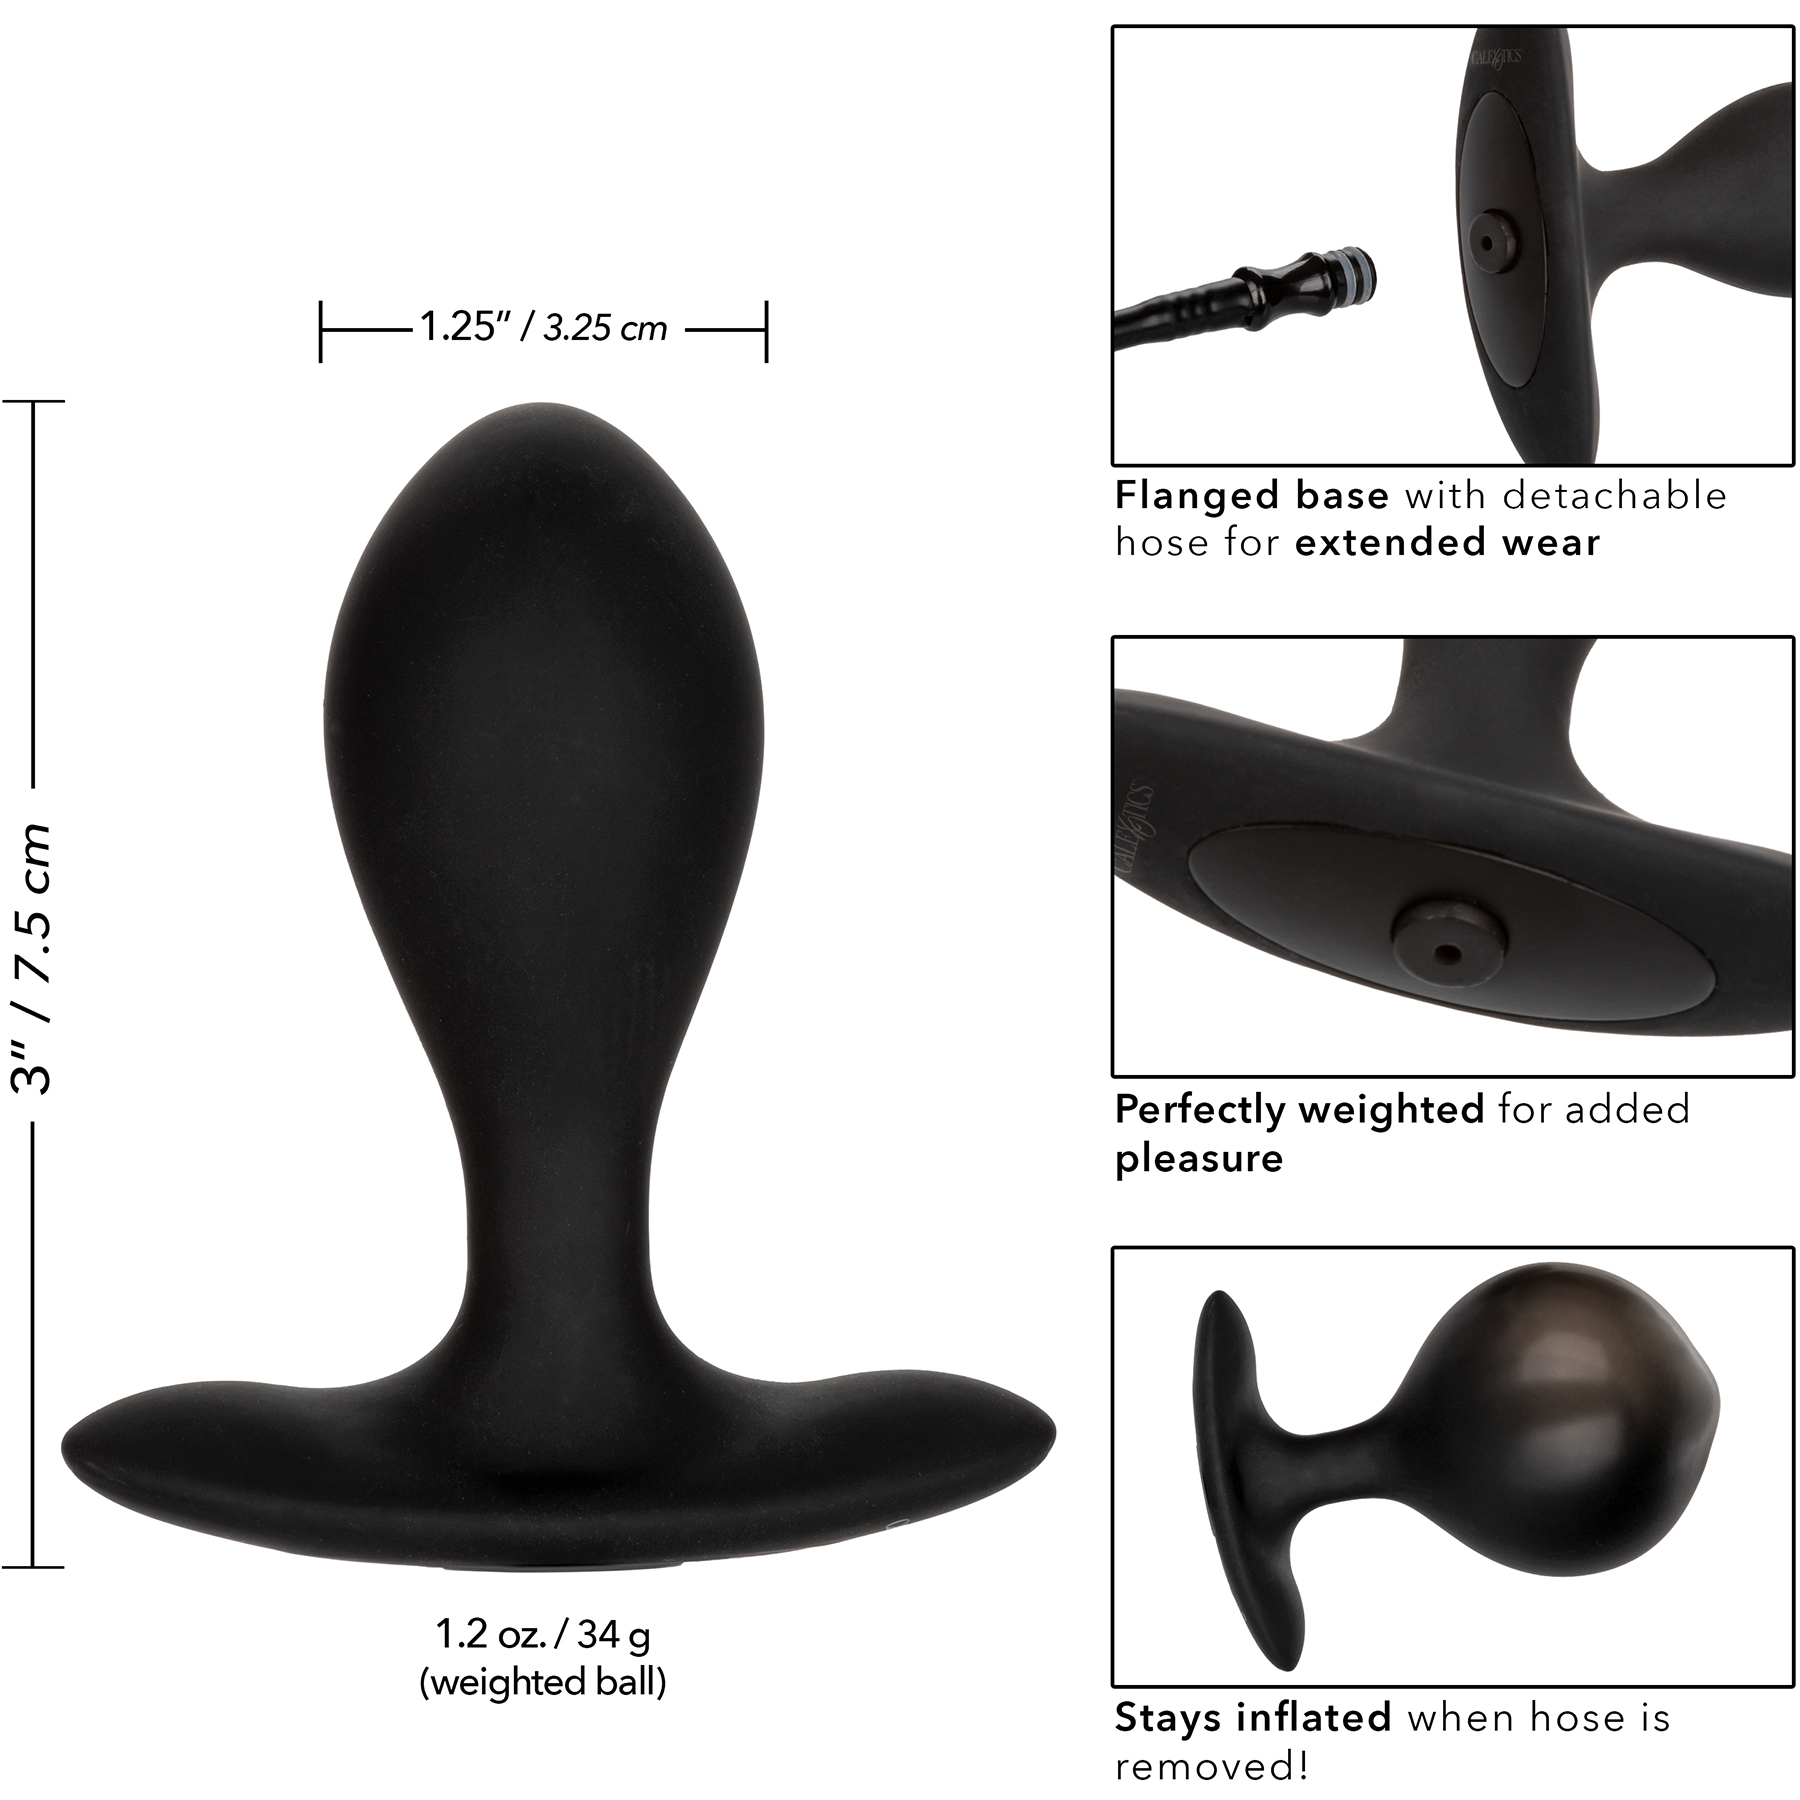 Weighted Silicone Inflatable Butt Plug By CalExotics - Large Measurements